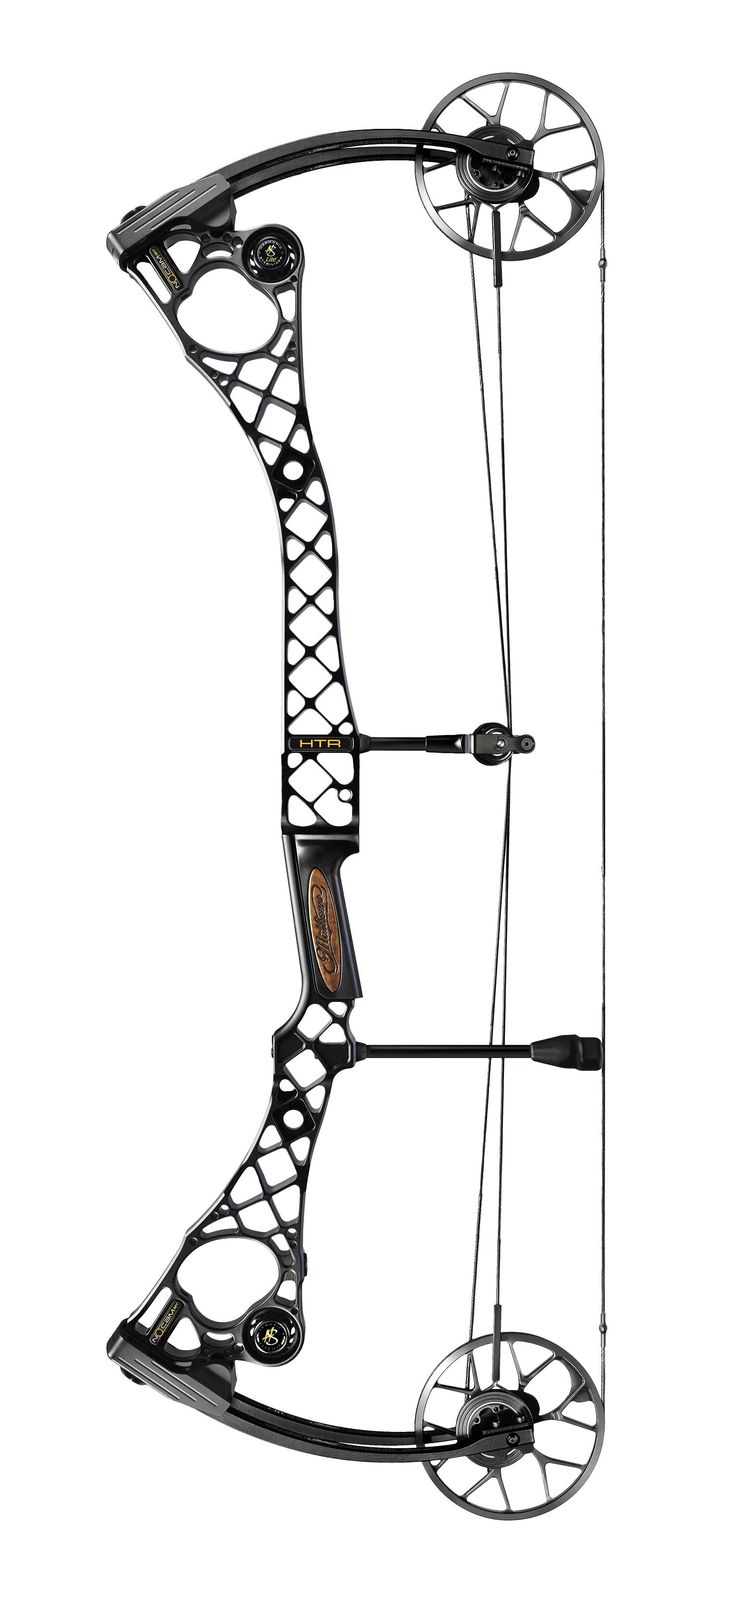 17 Best ideas about Mathews Archery on Pinterest | Compound bow ...